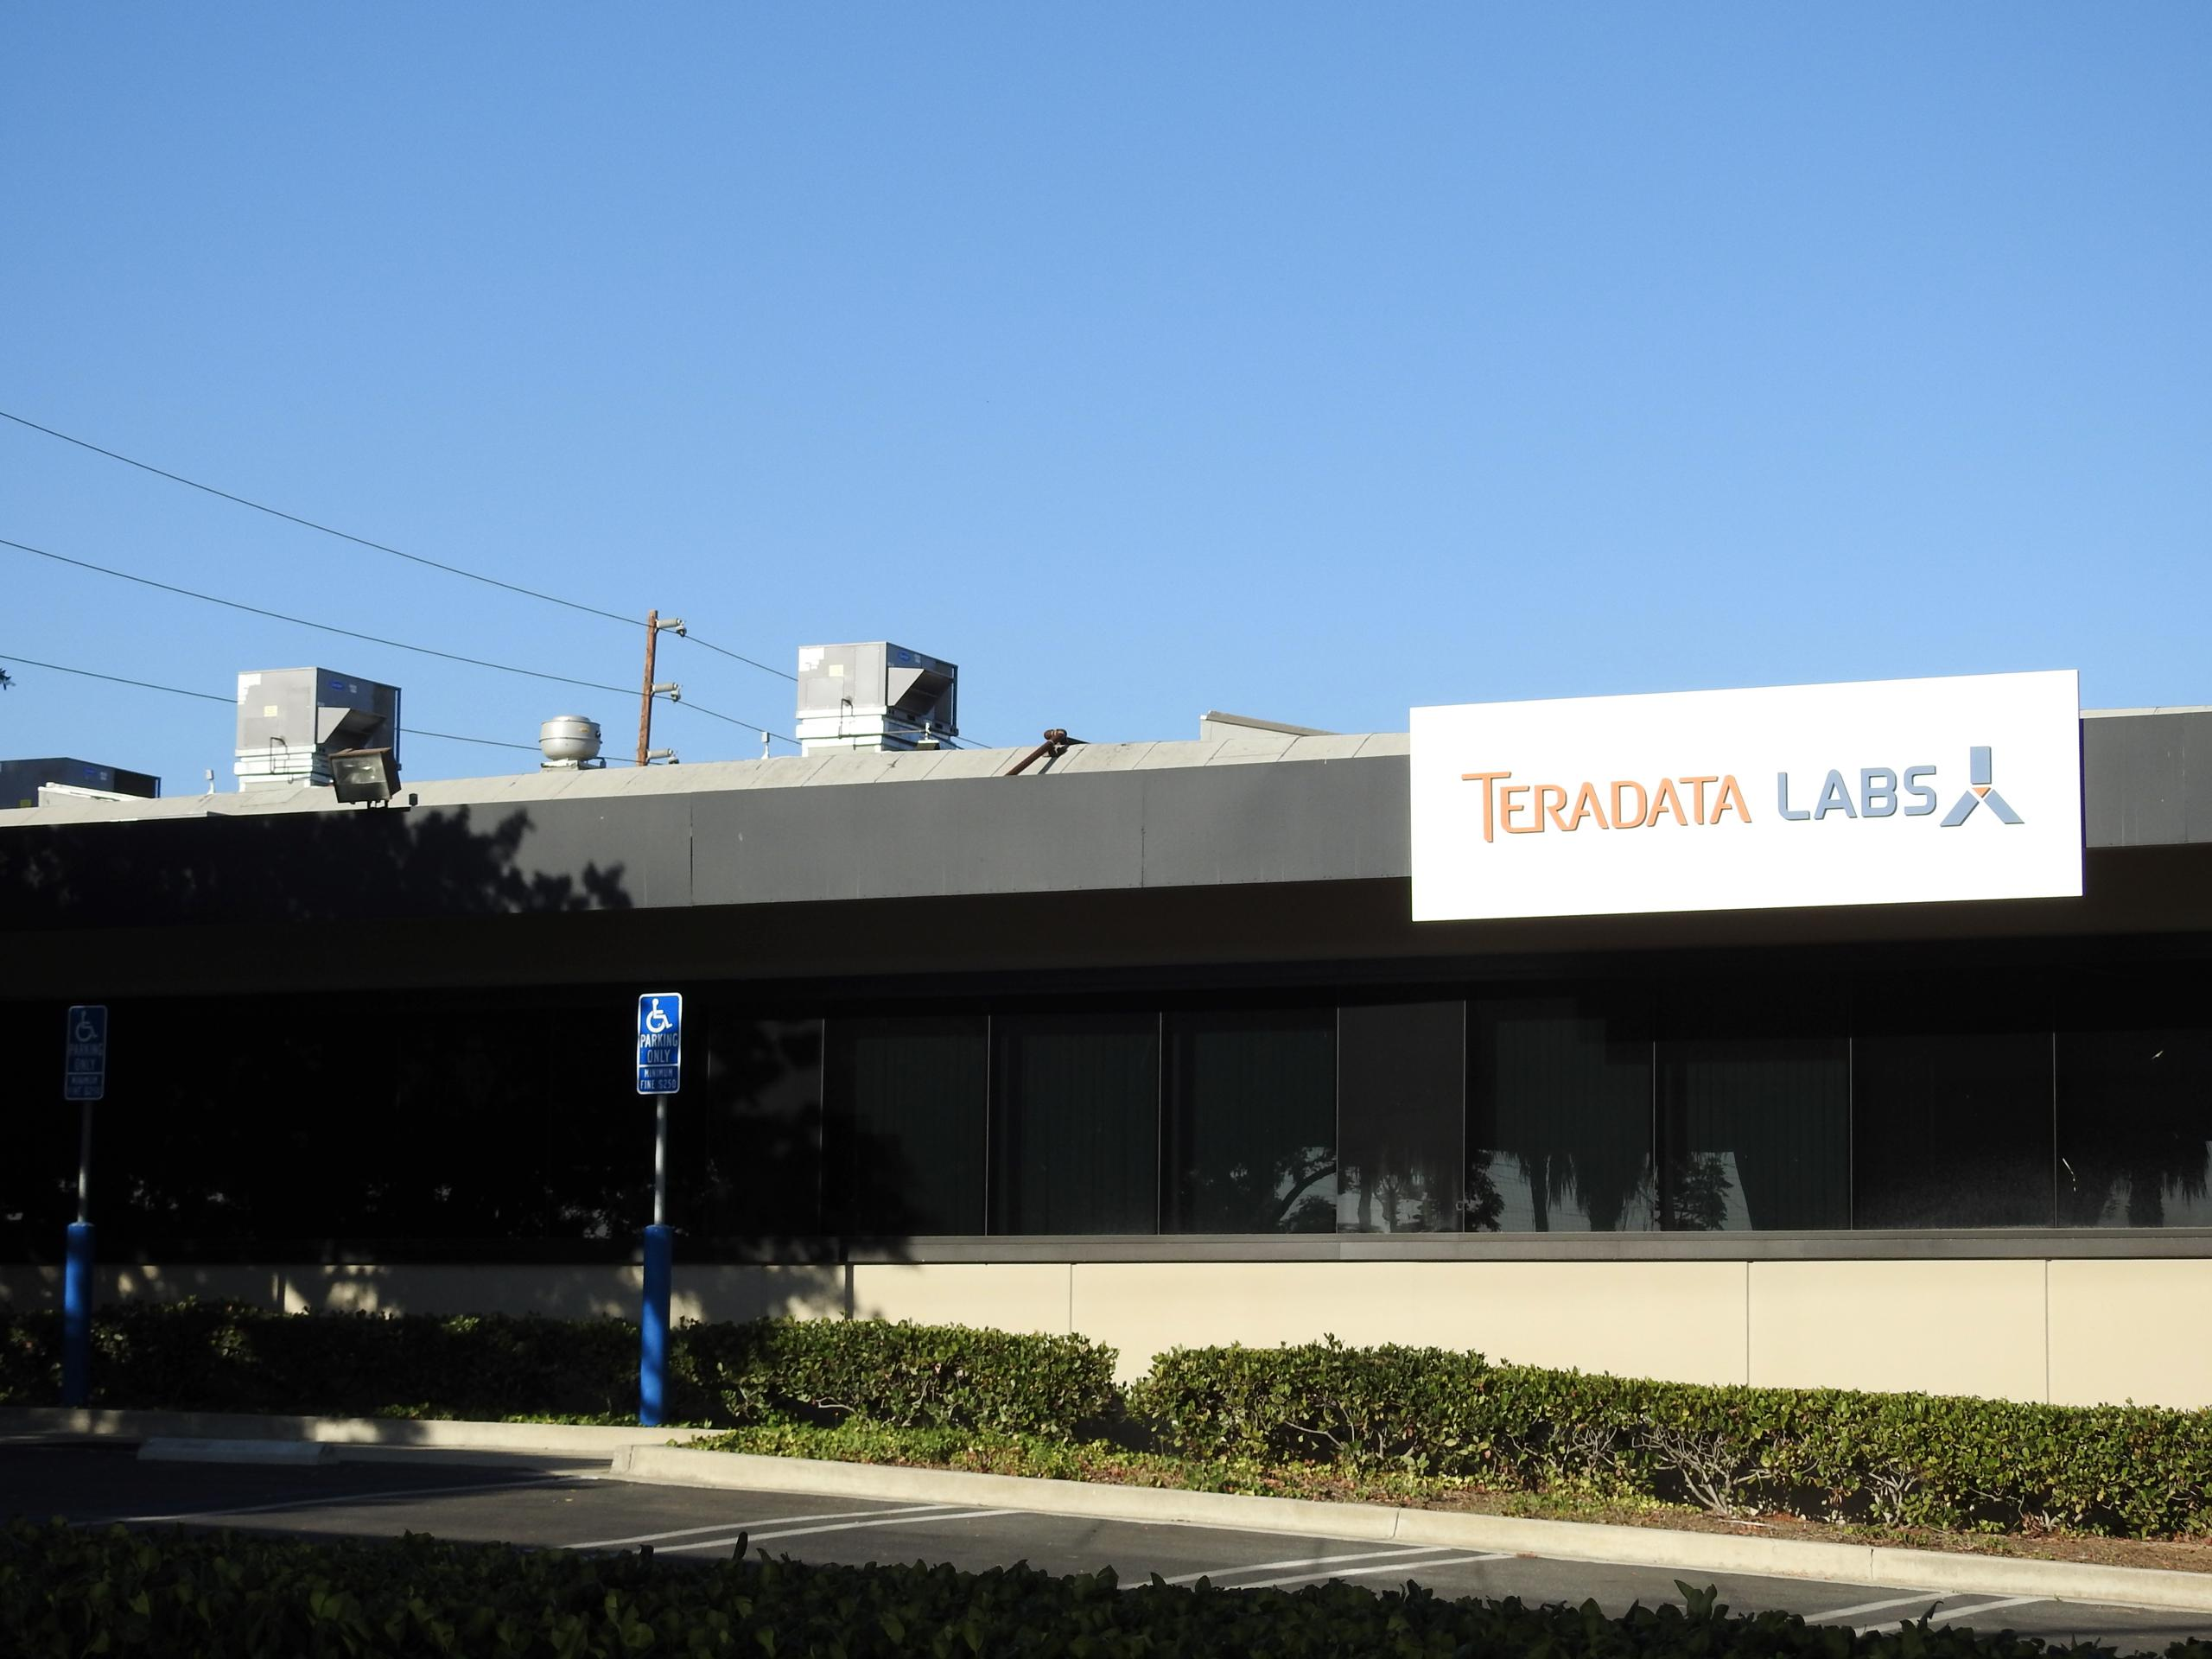 Teradata office in El Segundo, California.